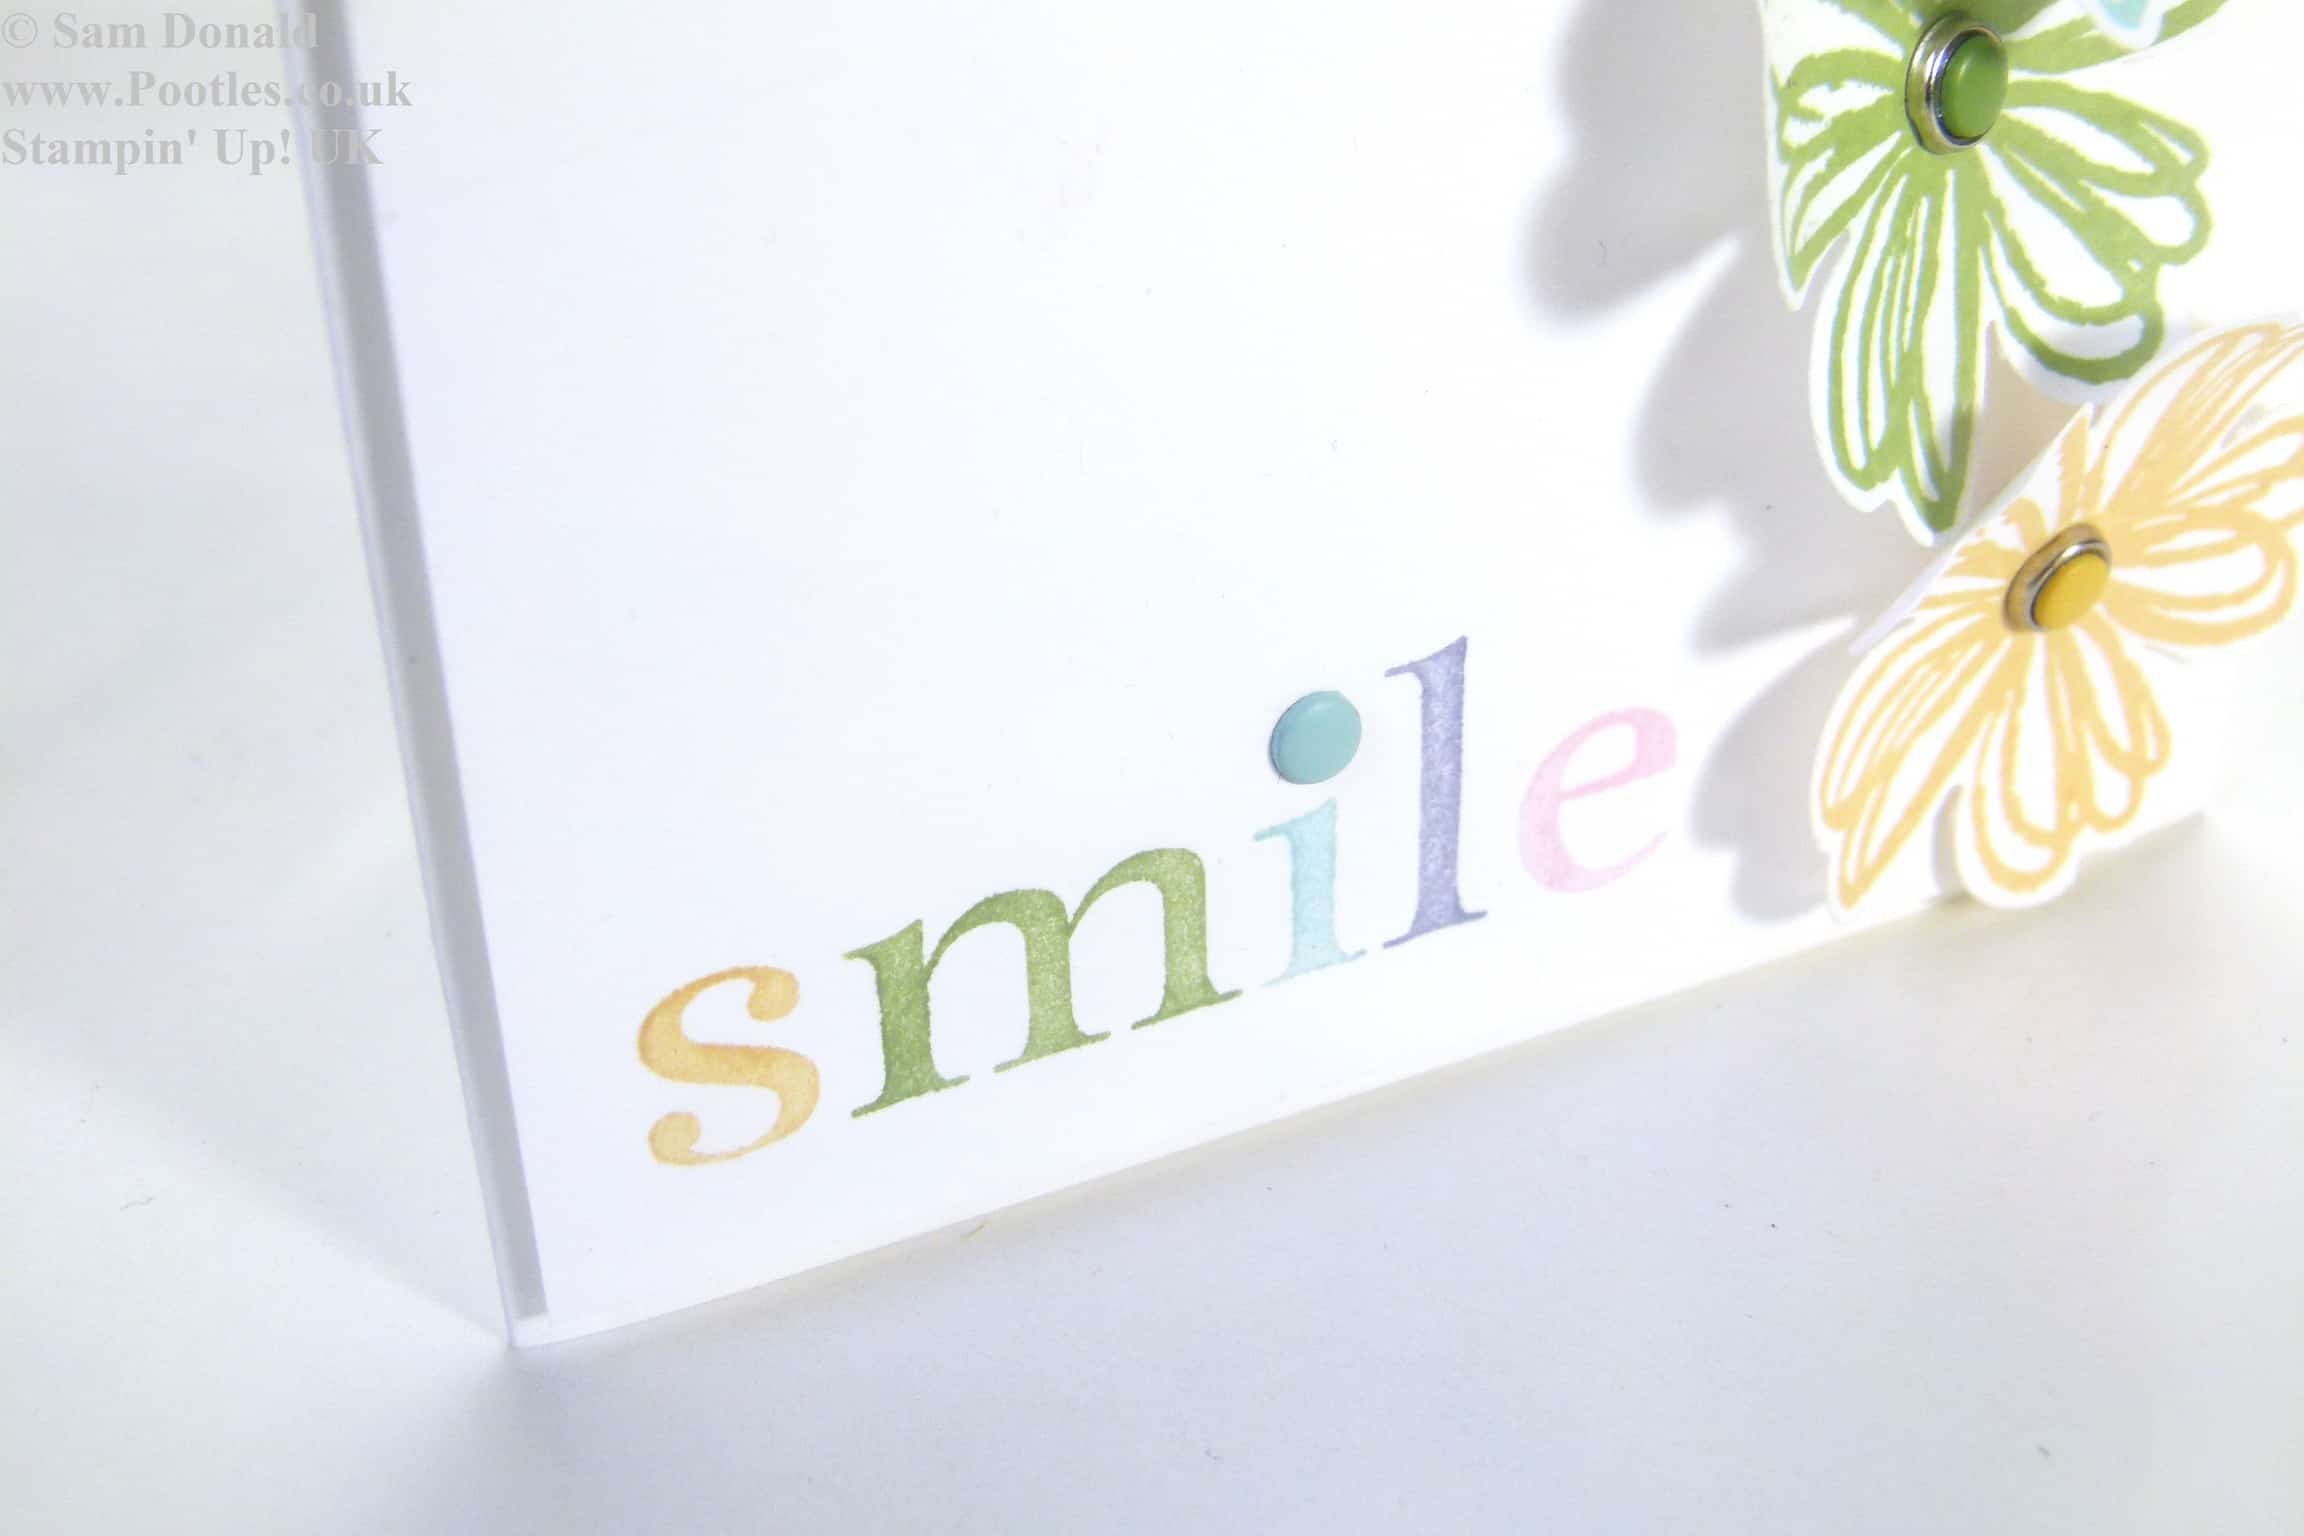 POOTLES Stampin Up UK Subtle Smile 2